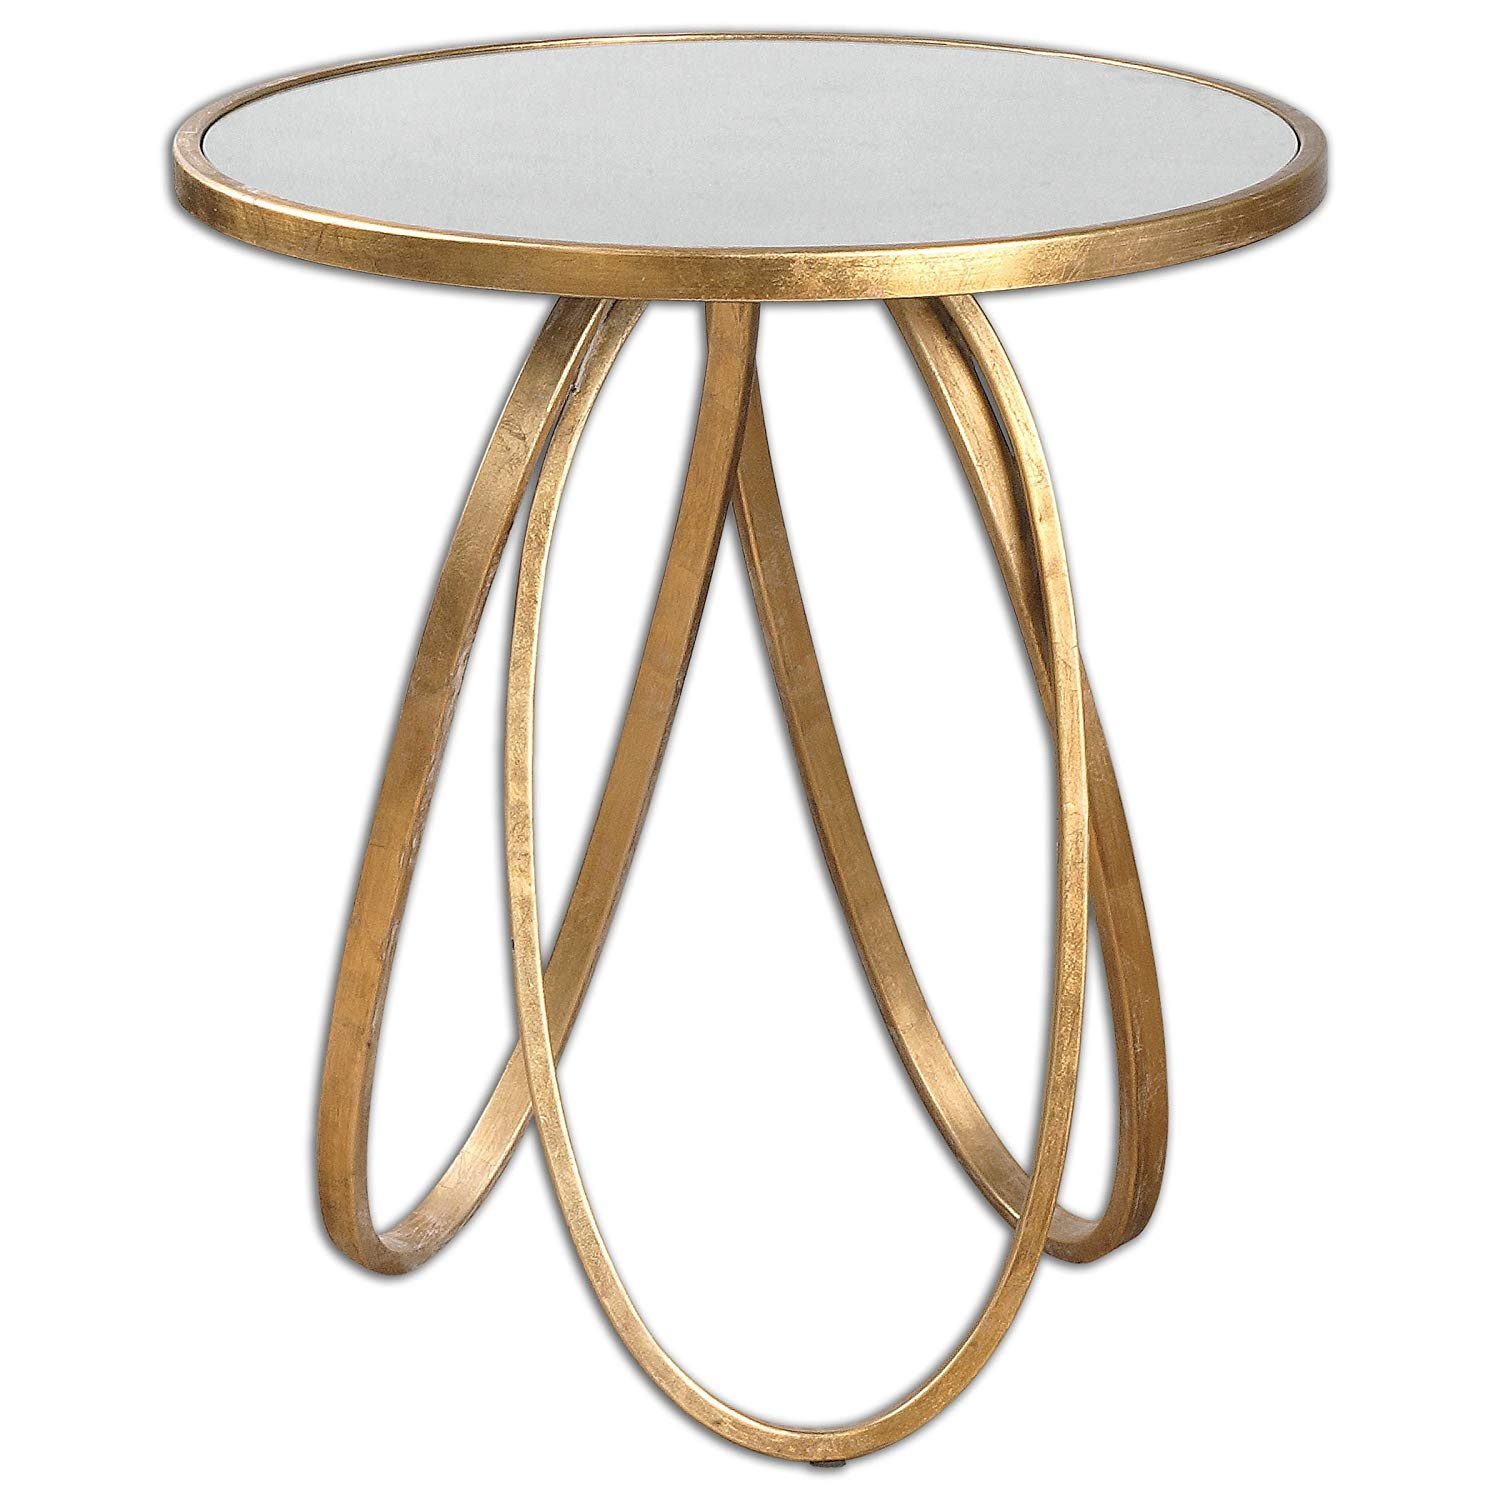 uttermost montrez gold accent table kitchen dining dale tiffany ceiling lamps door threshold seal hobby lobby furniture ceramic patio side sofa with drawer large grey clock drum